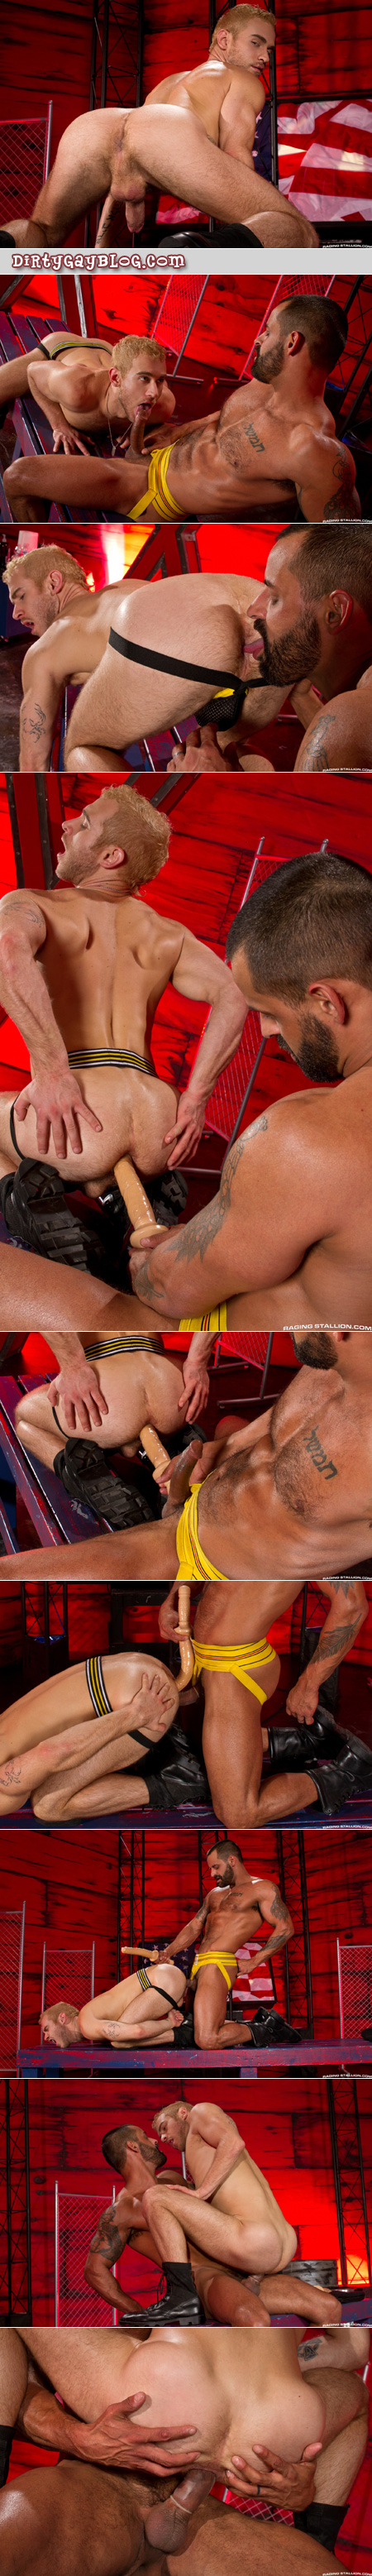 Muscular adonis fucks a scruffy blonde bottom with his huge cock and a big dildo at the same time.